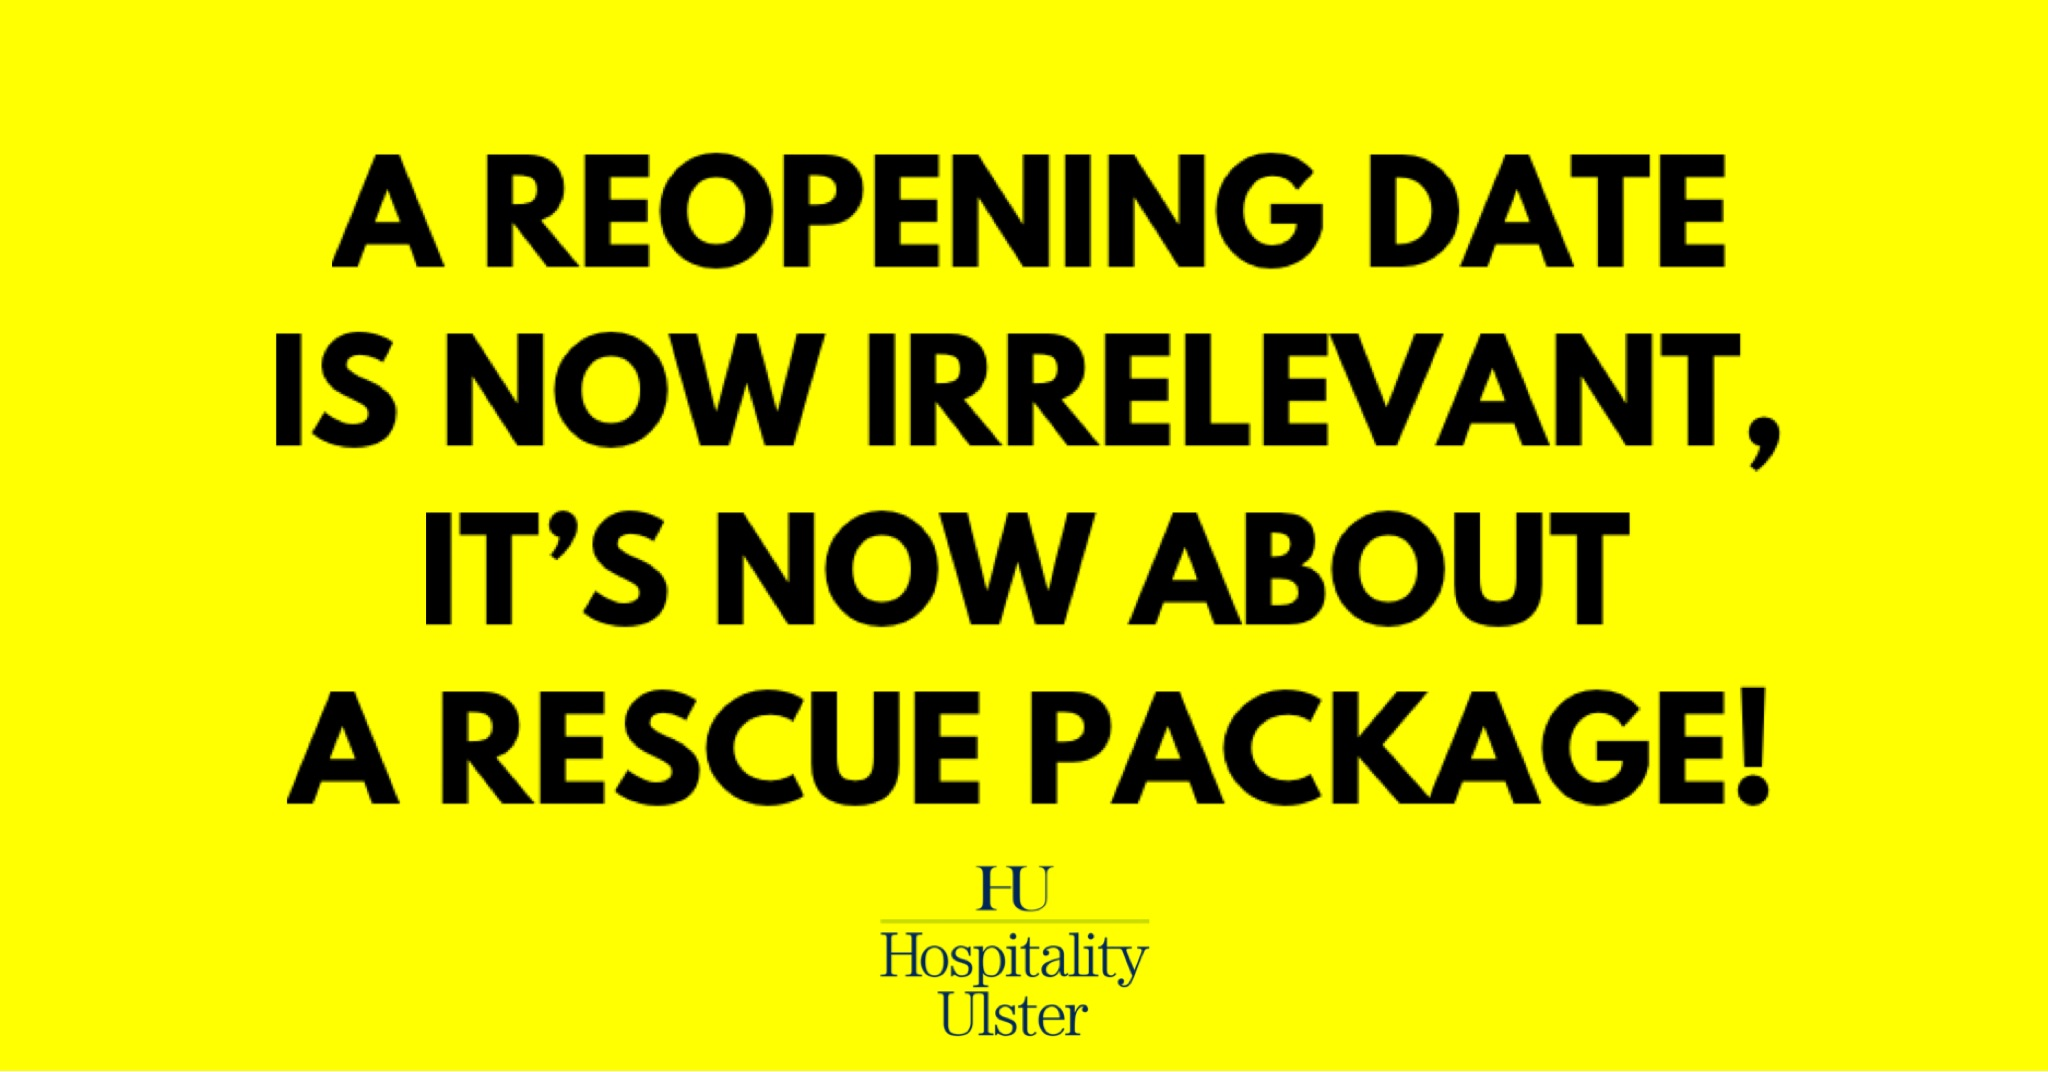 A REOPENING DATE IS NOW IRRELEVANT - ITS NOW ABOUT A RESCUE PACKAGE